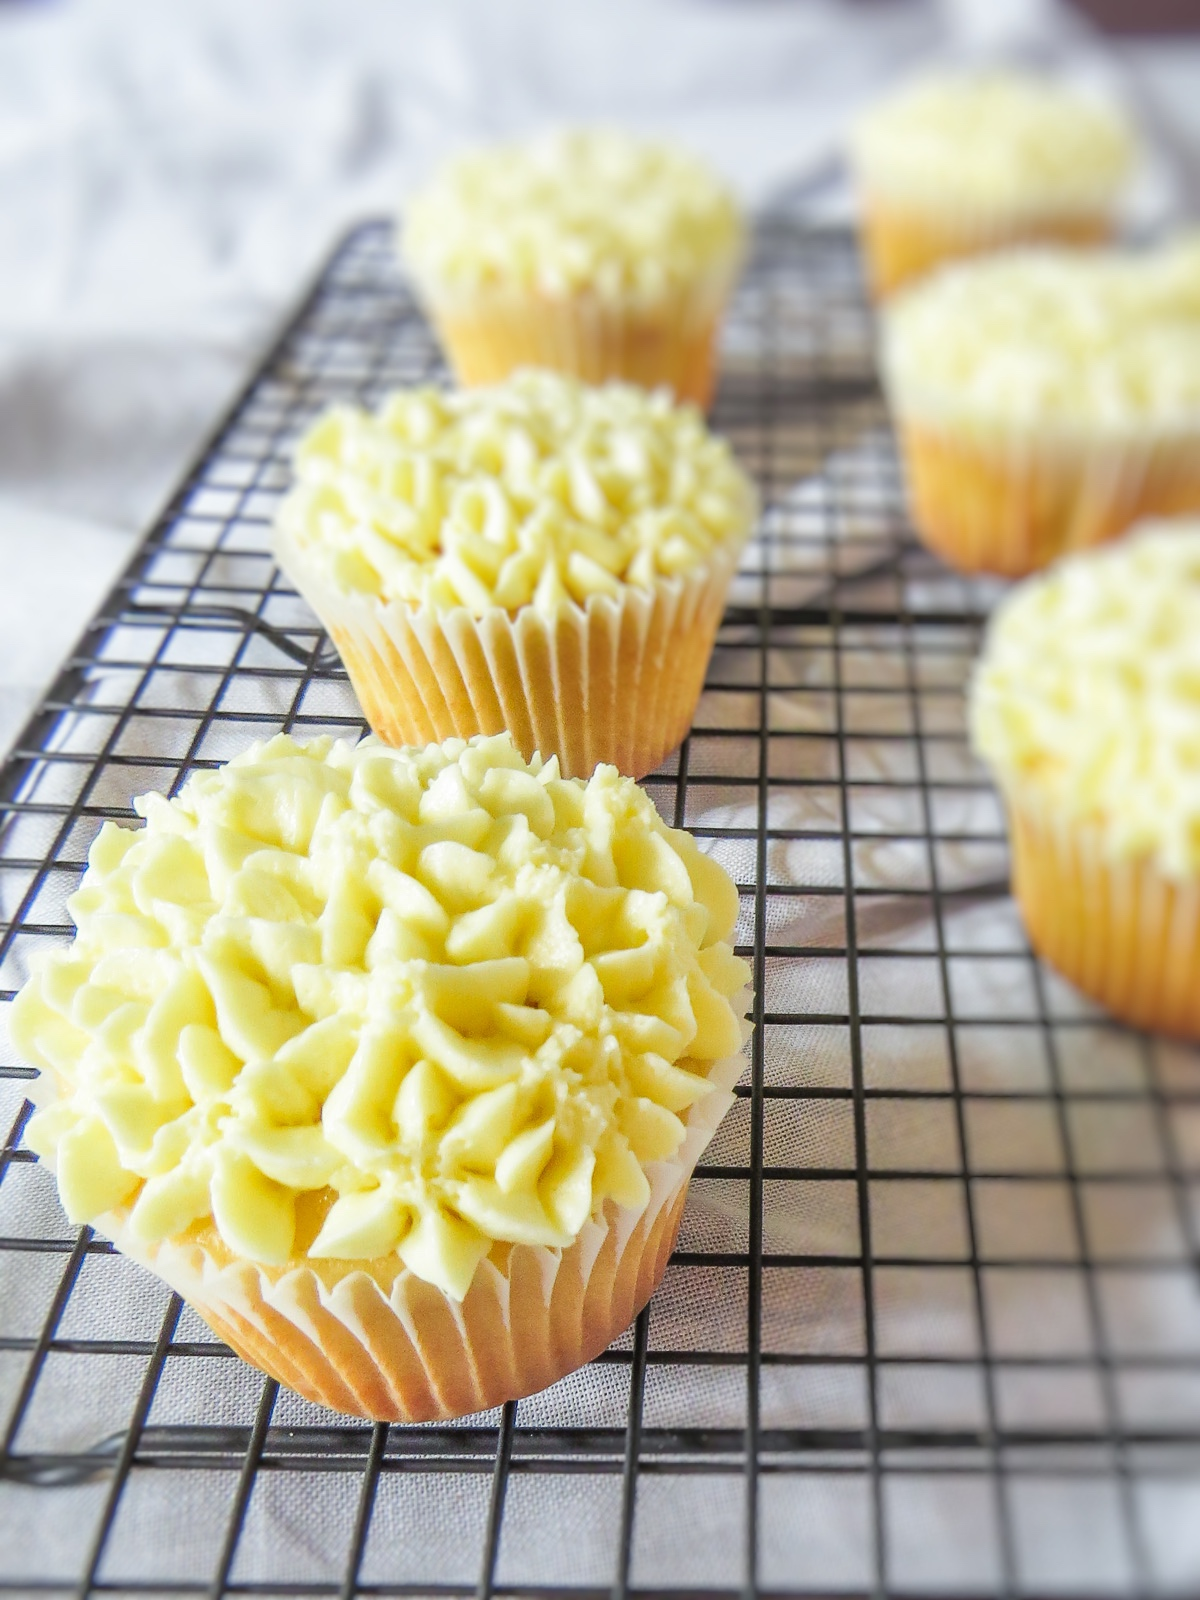 Hydrangea in Bloom Cupcakes - Simple vanilla buttermilk cupcakes topped are made stunning with with yummy lemon buttercream pipped as hydrangeas. Perfect for a special occasion, like your flower loving mom's birthday, or just because!